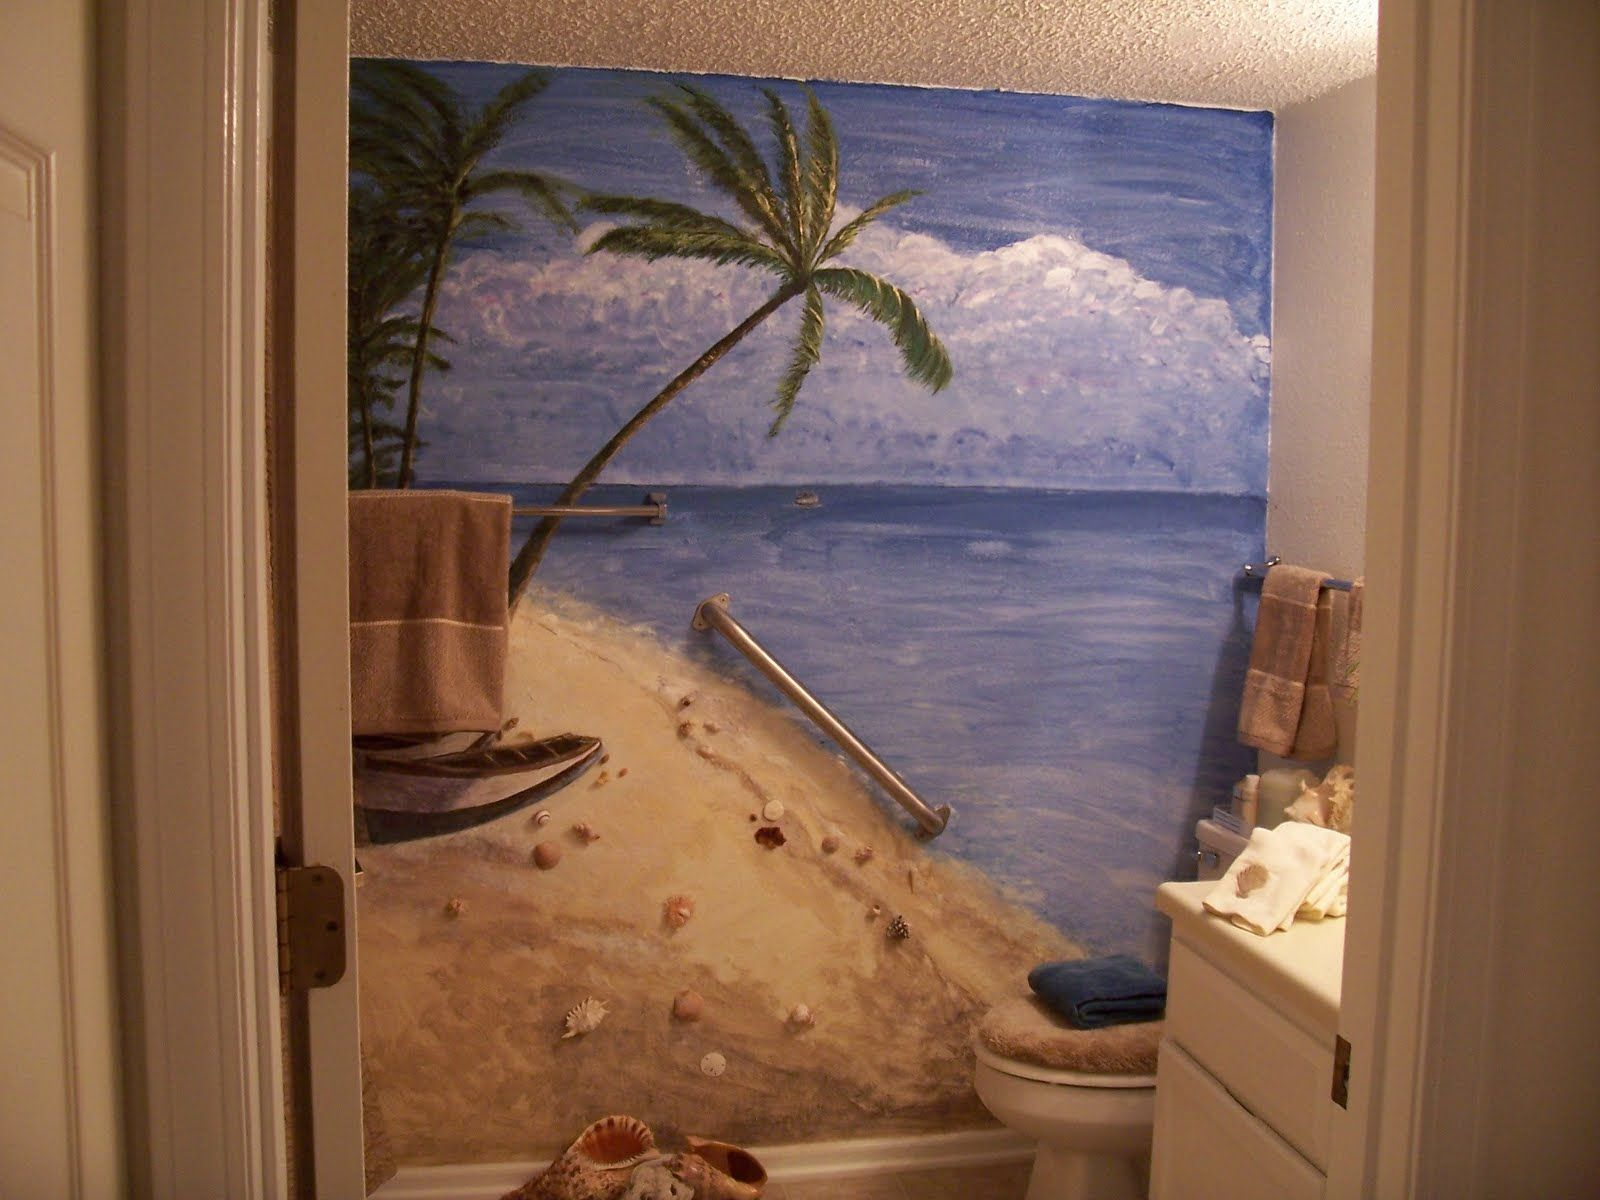 Beach Theme Decor For Your Bathroom DECOR Pinterest